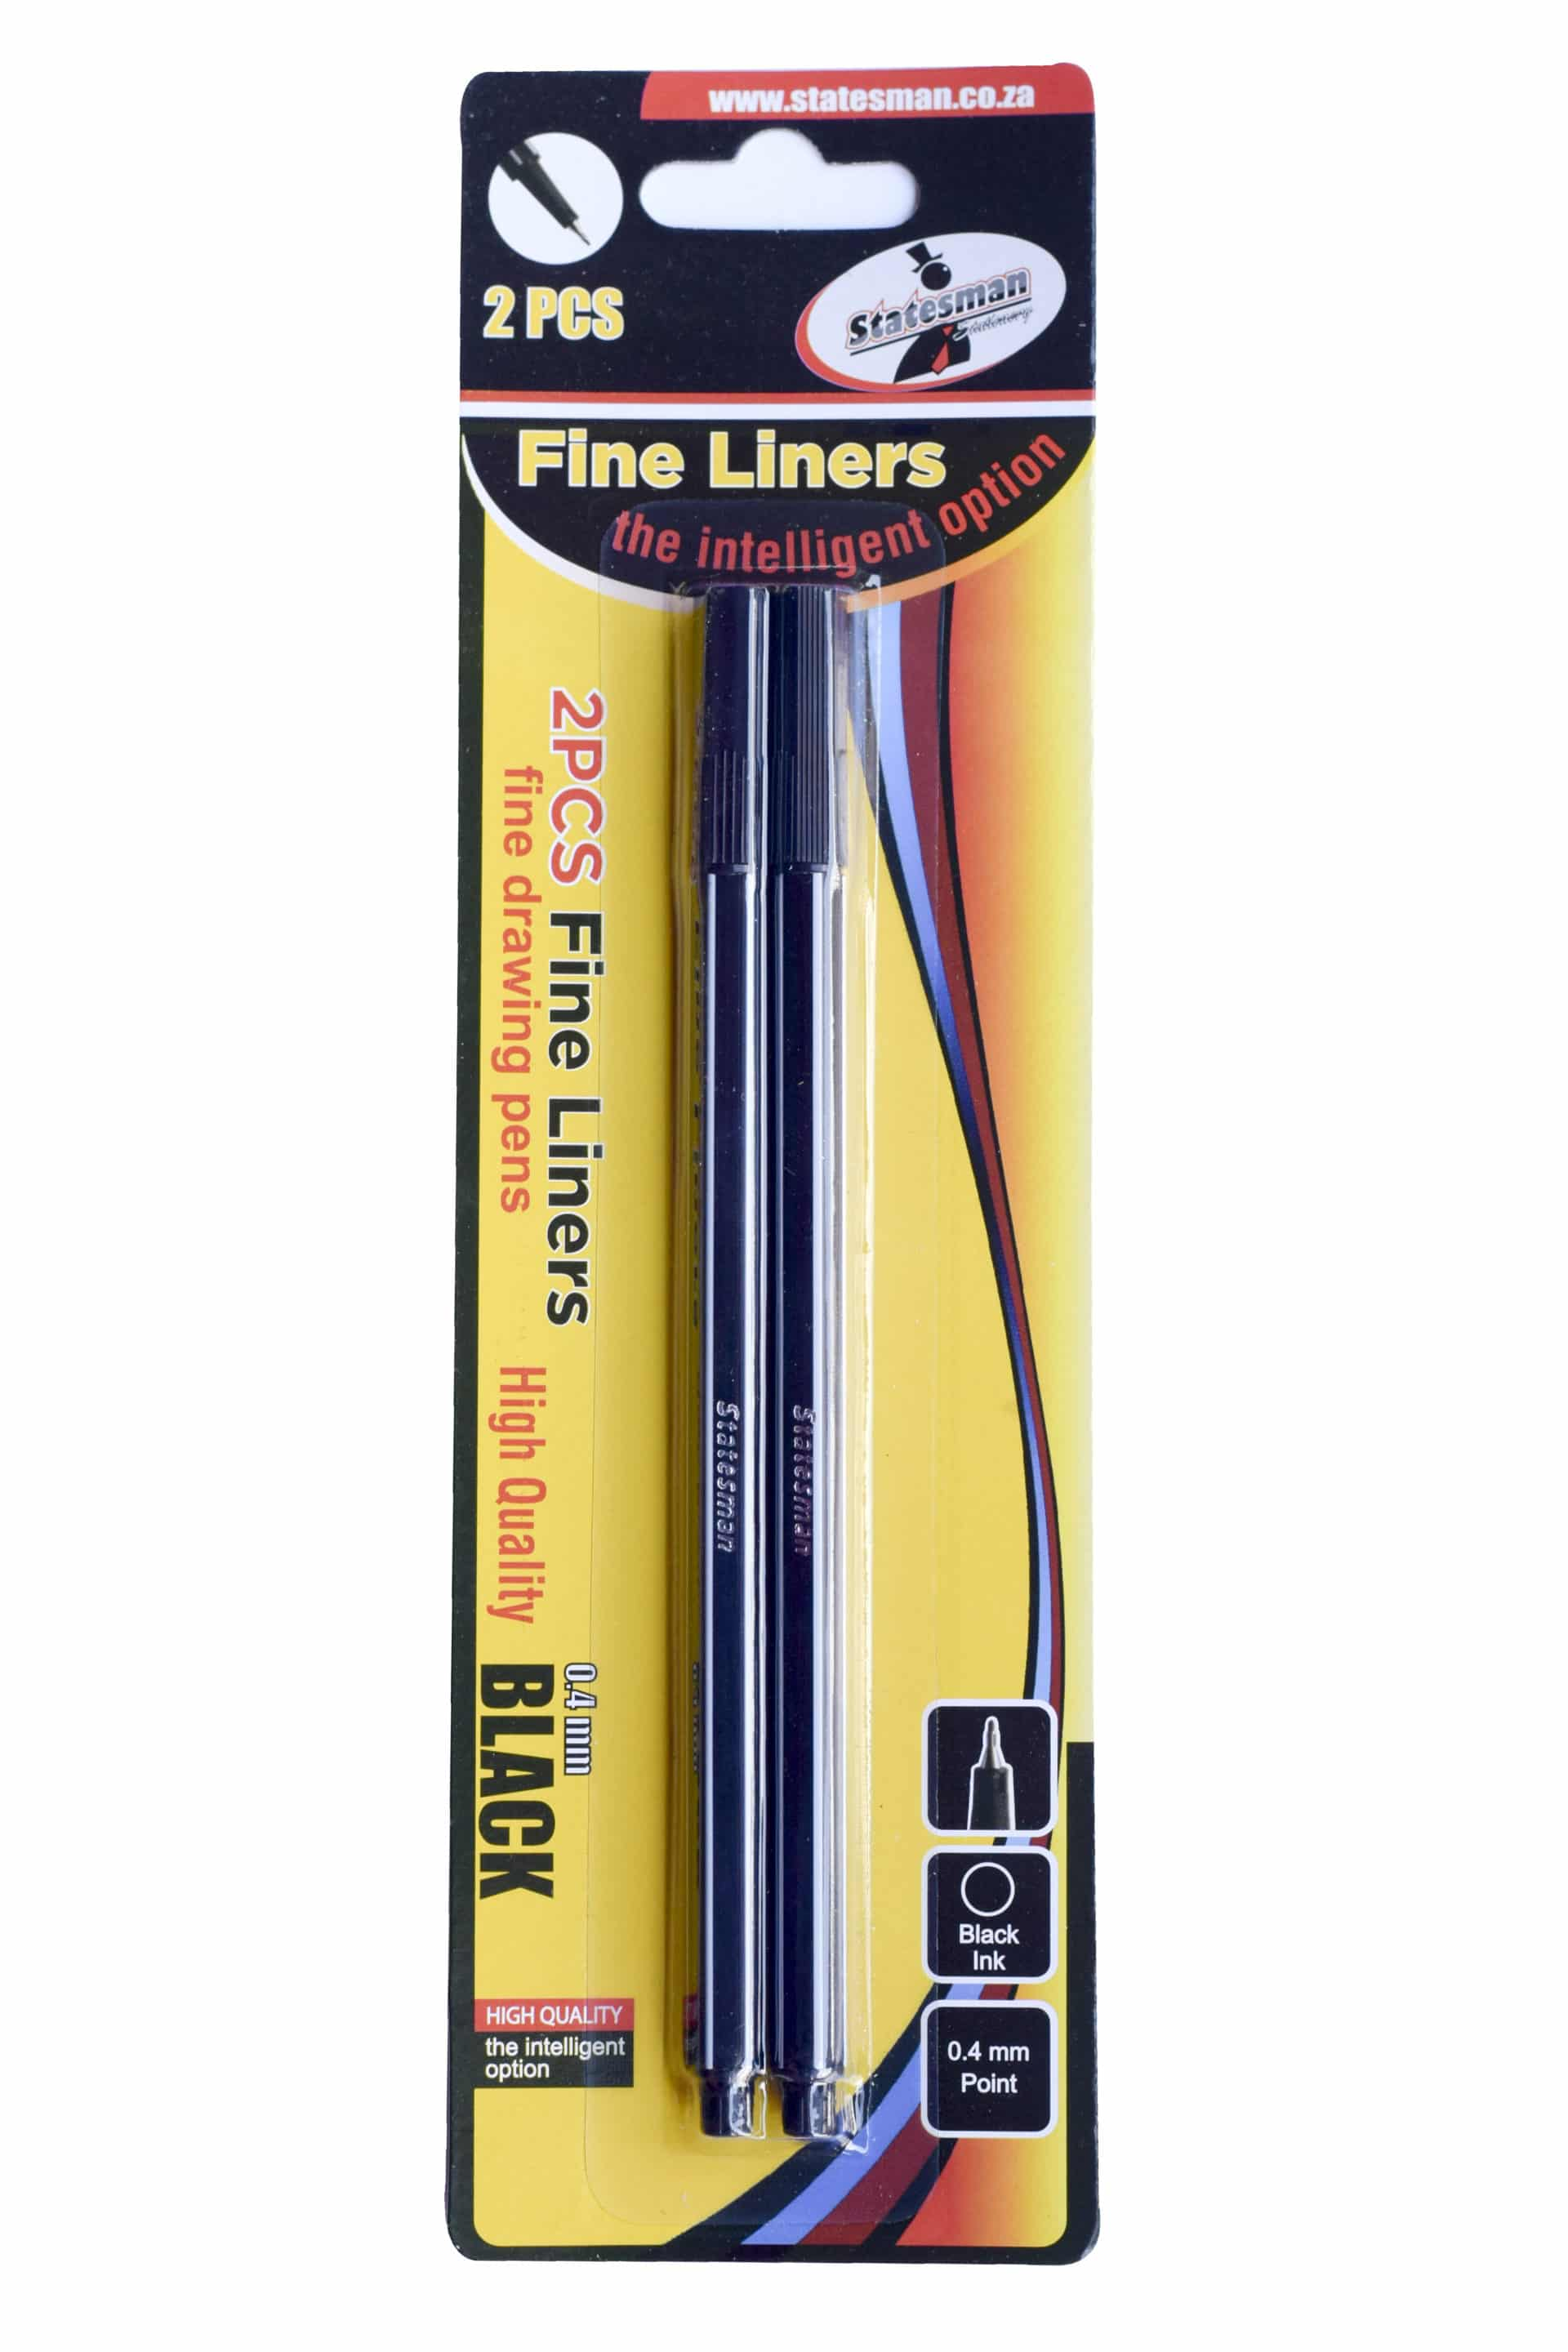 Fineliners 2 Piece Black Carded Special Offer 1